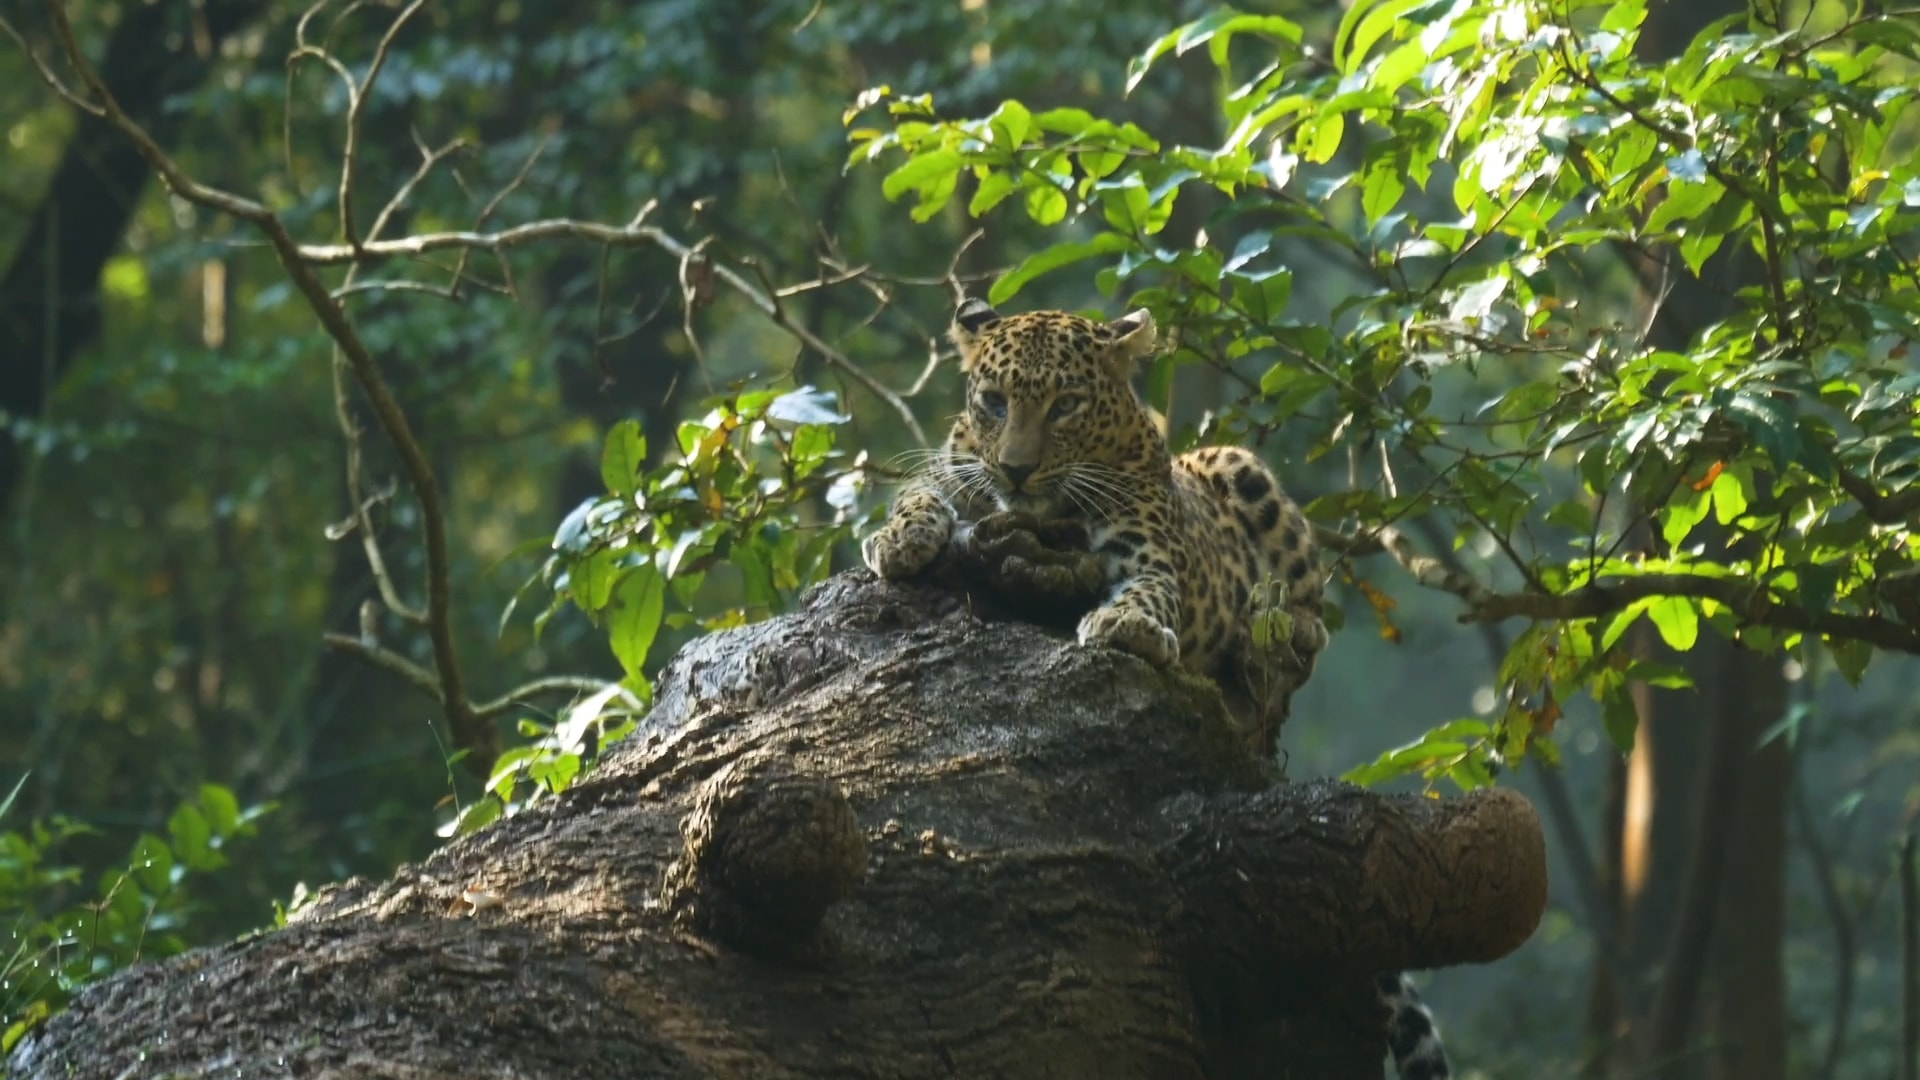 India Has Lost 75-90% of its Leopard Population